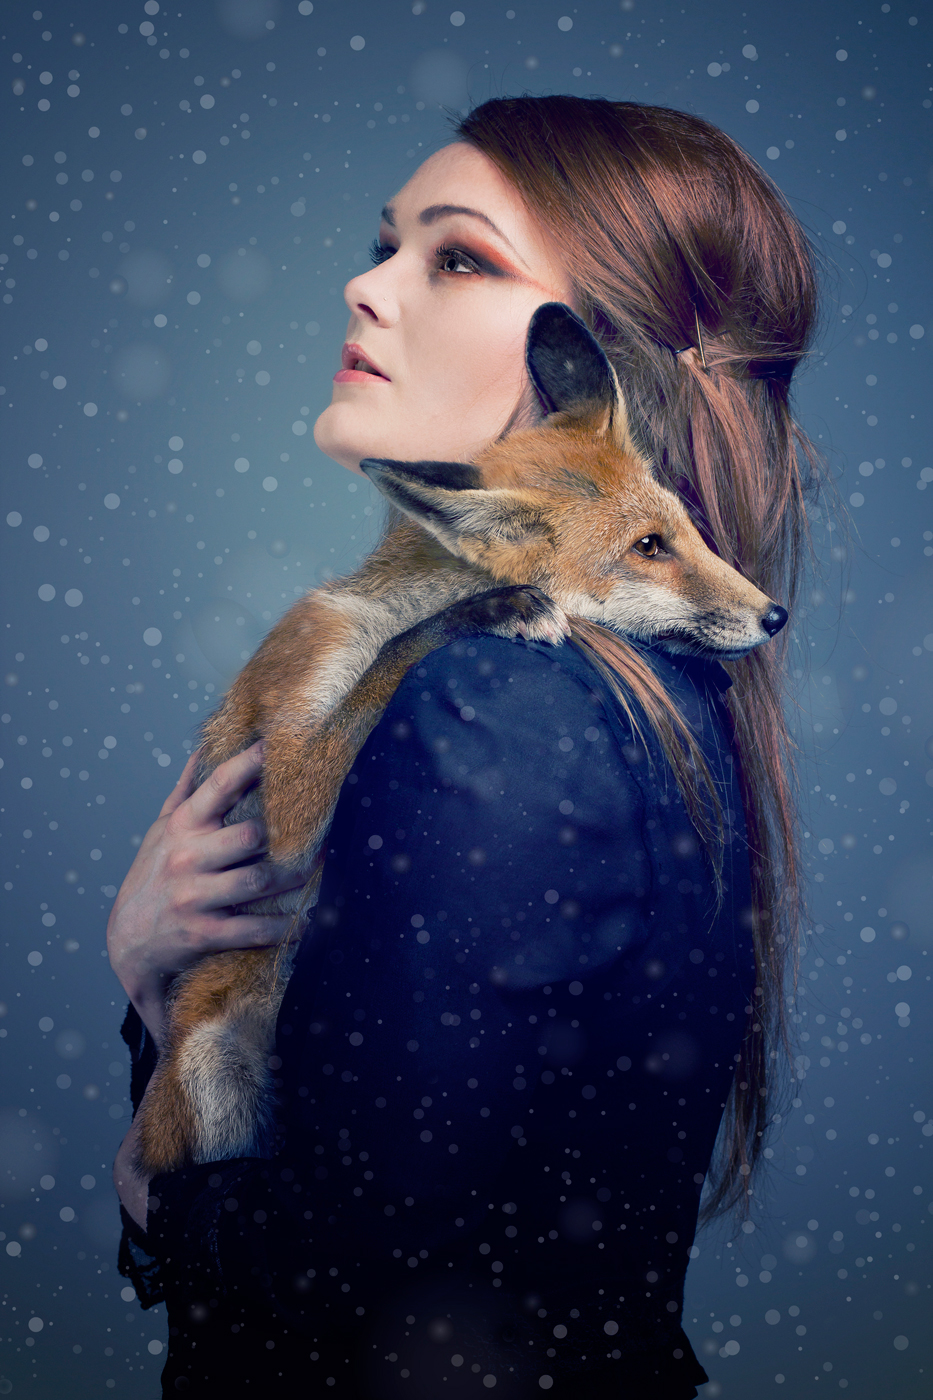 EMILY-FOX-SNOW-LARGE-JPEG.jpg